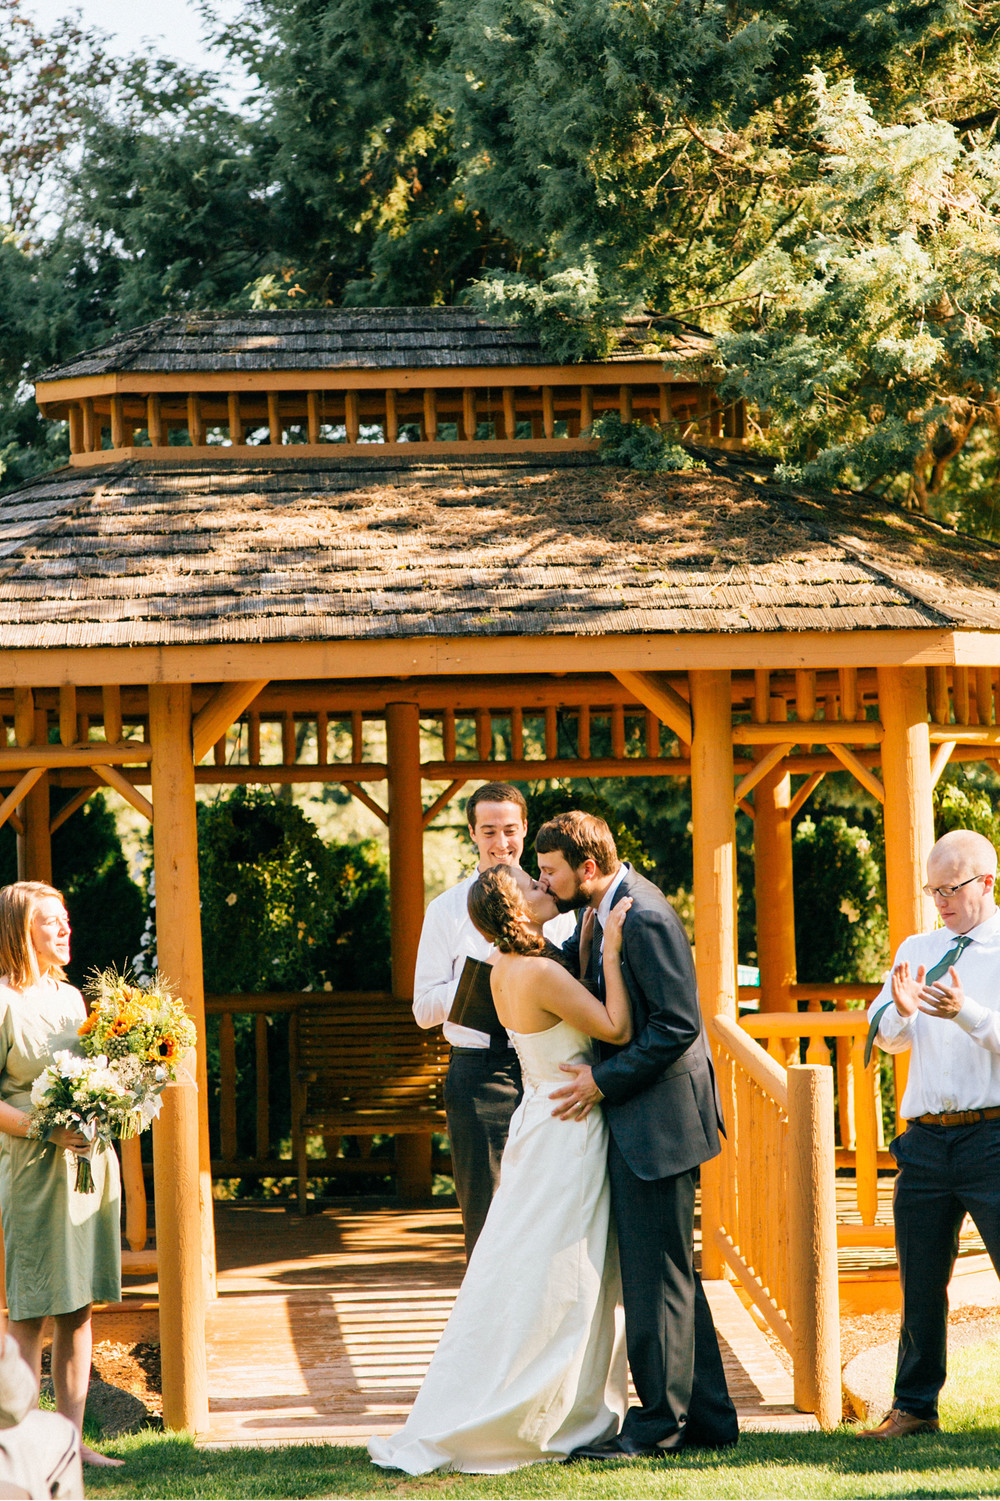 ashley vos photography seattle area wedding photographer_0760.jpg